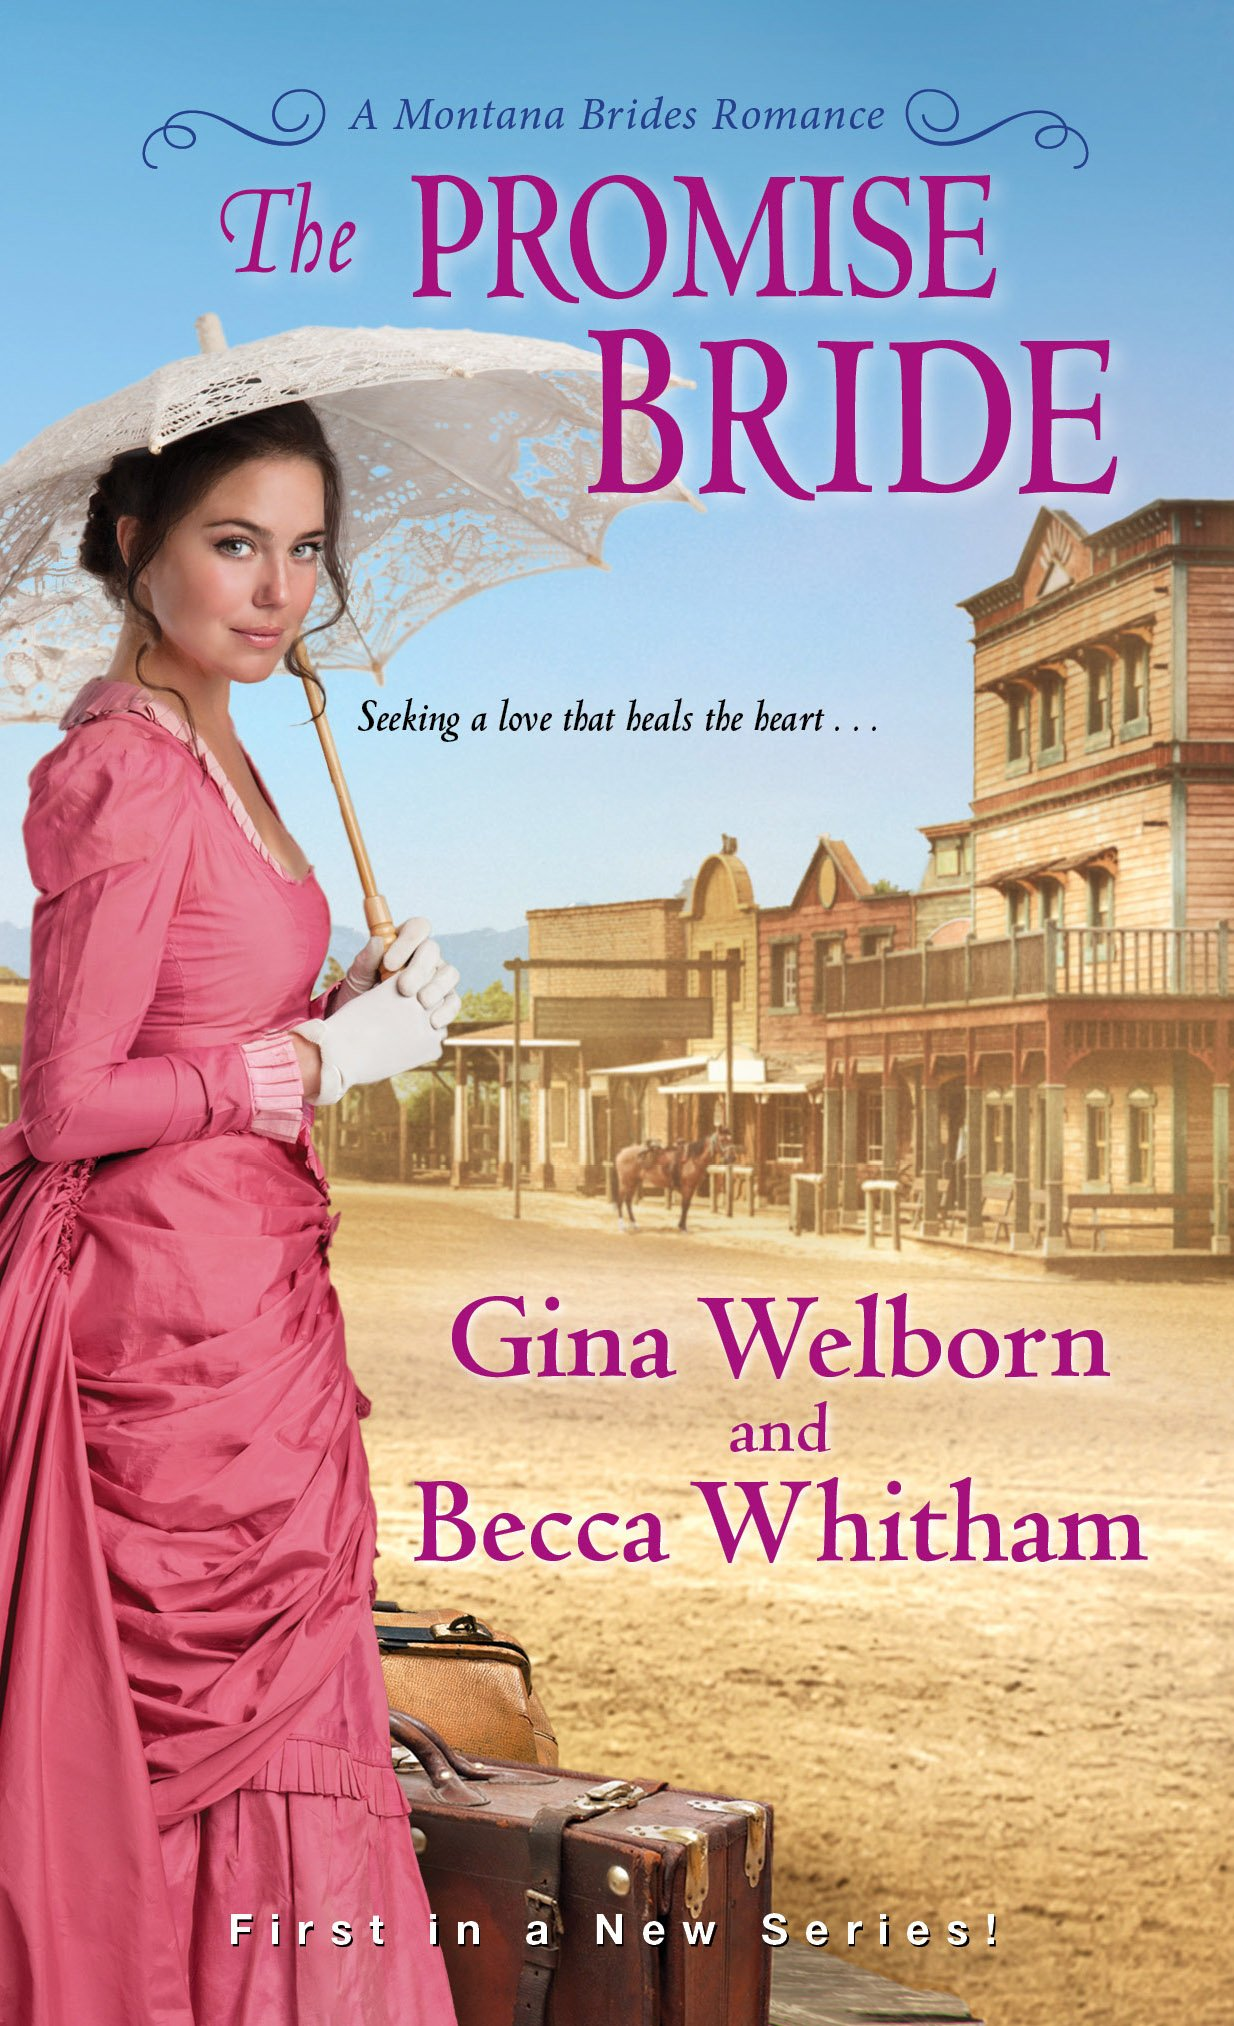 The Promise Bride